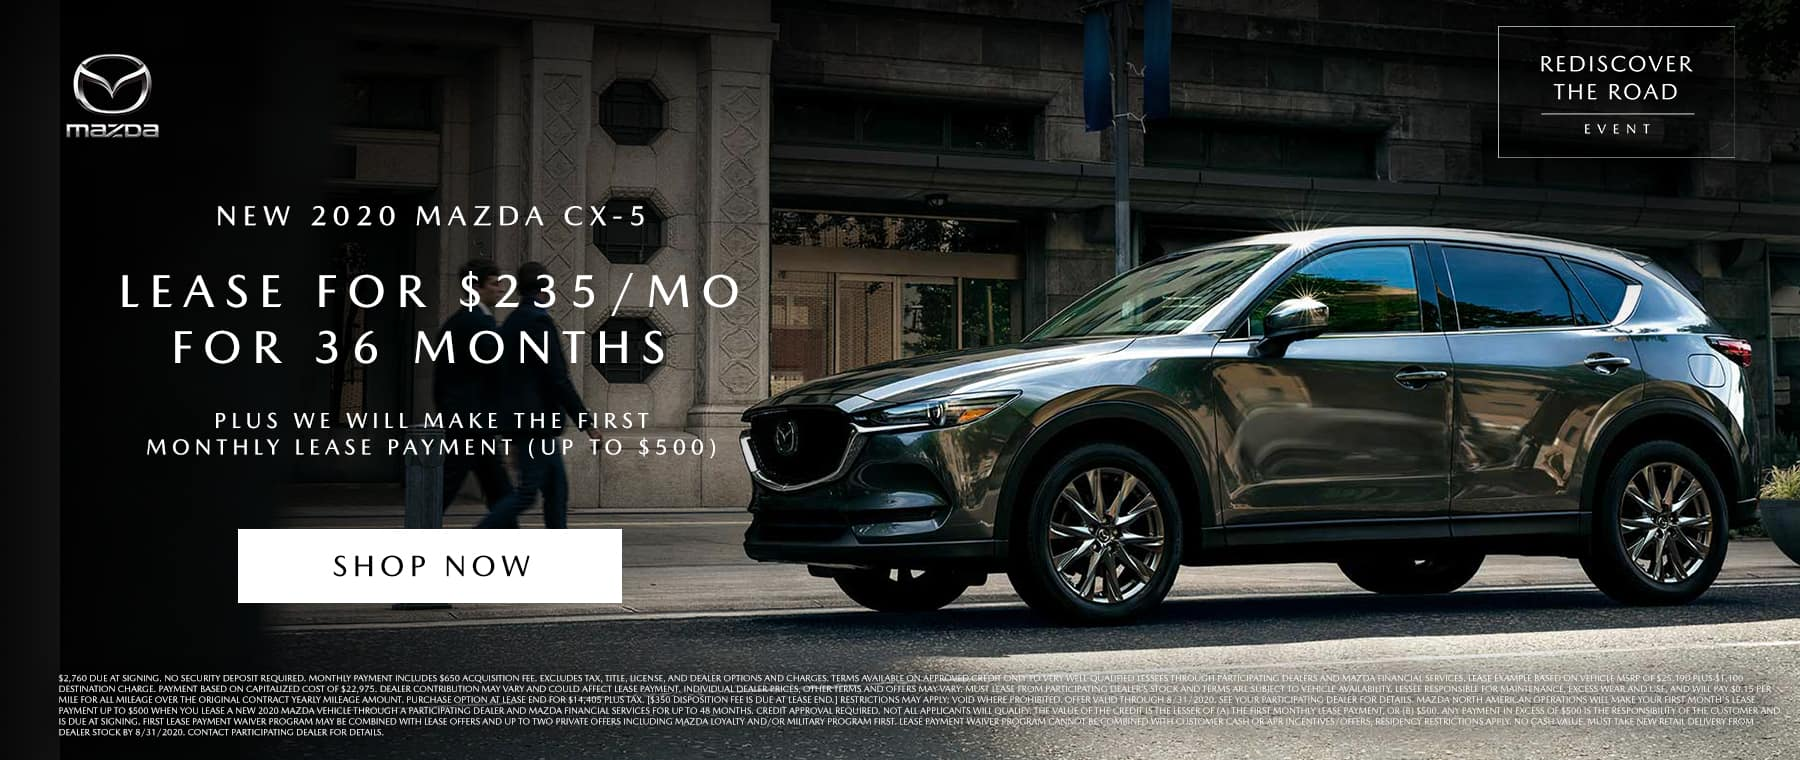 Mazda CX5 Lease August